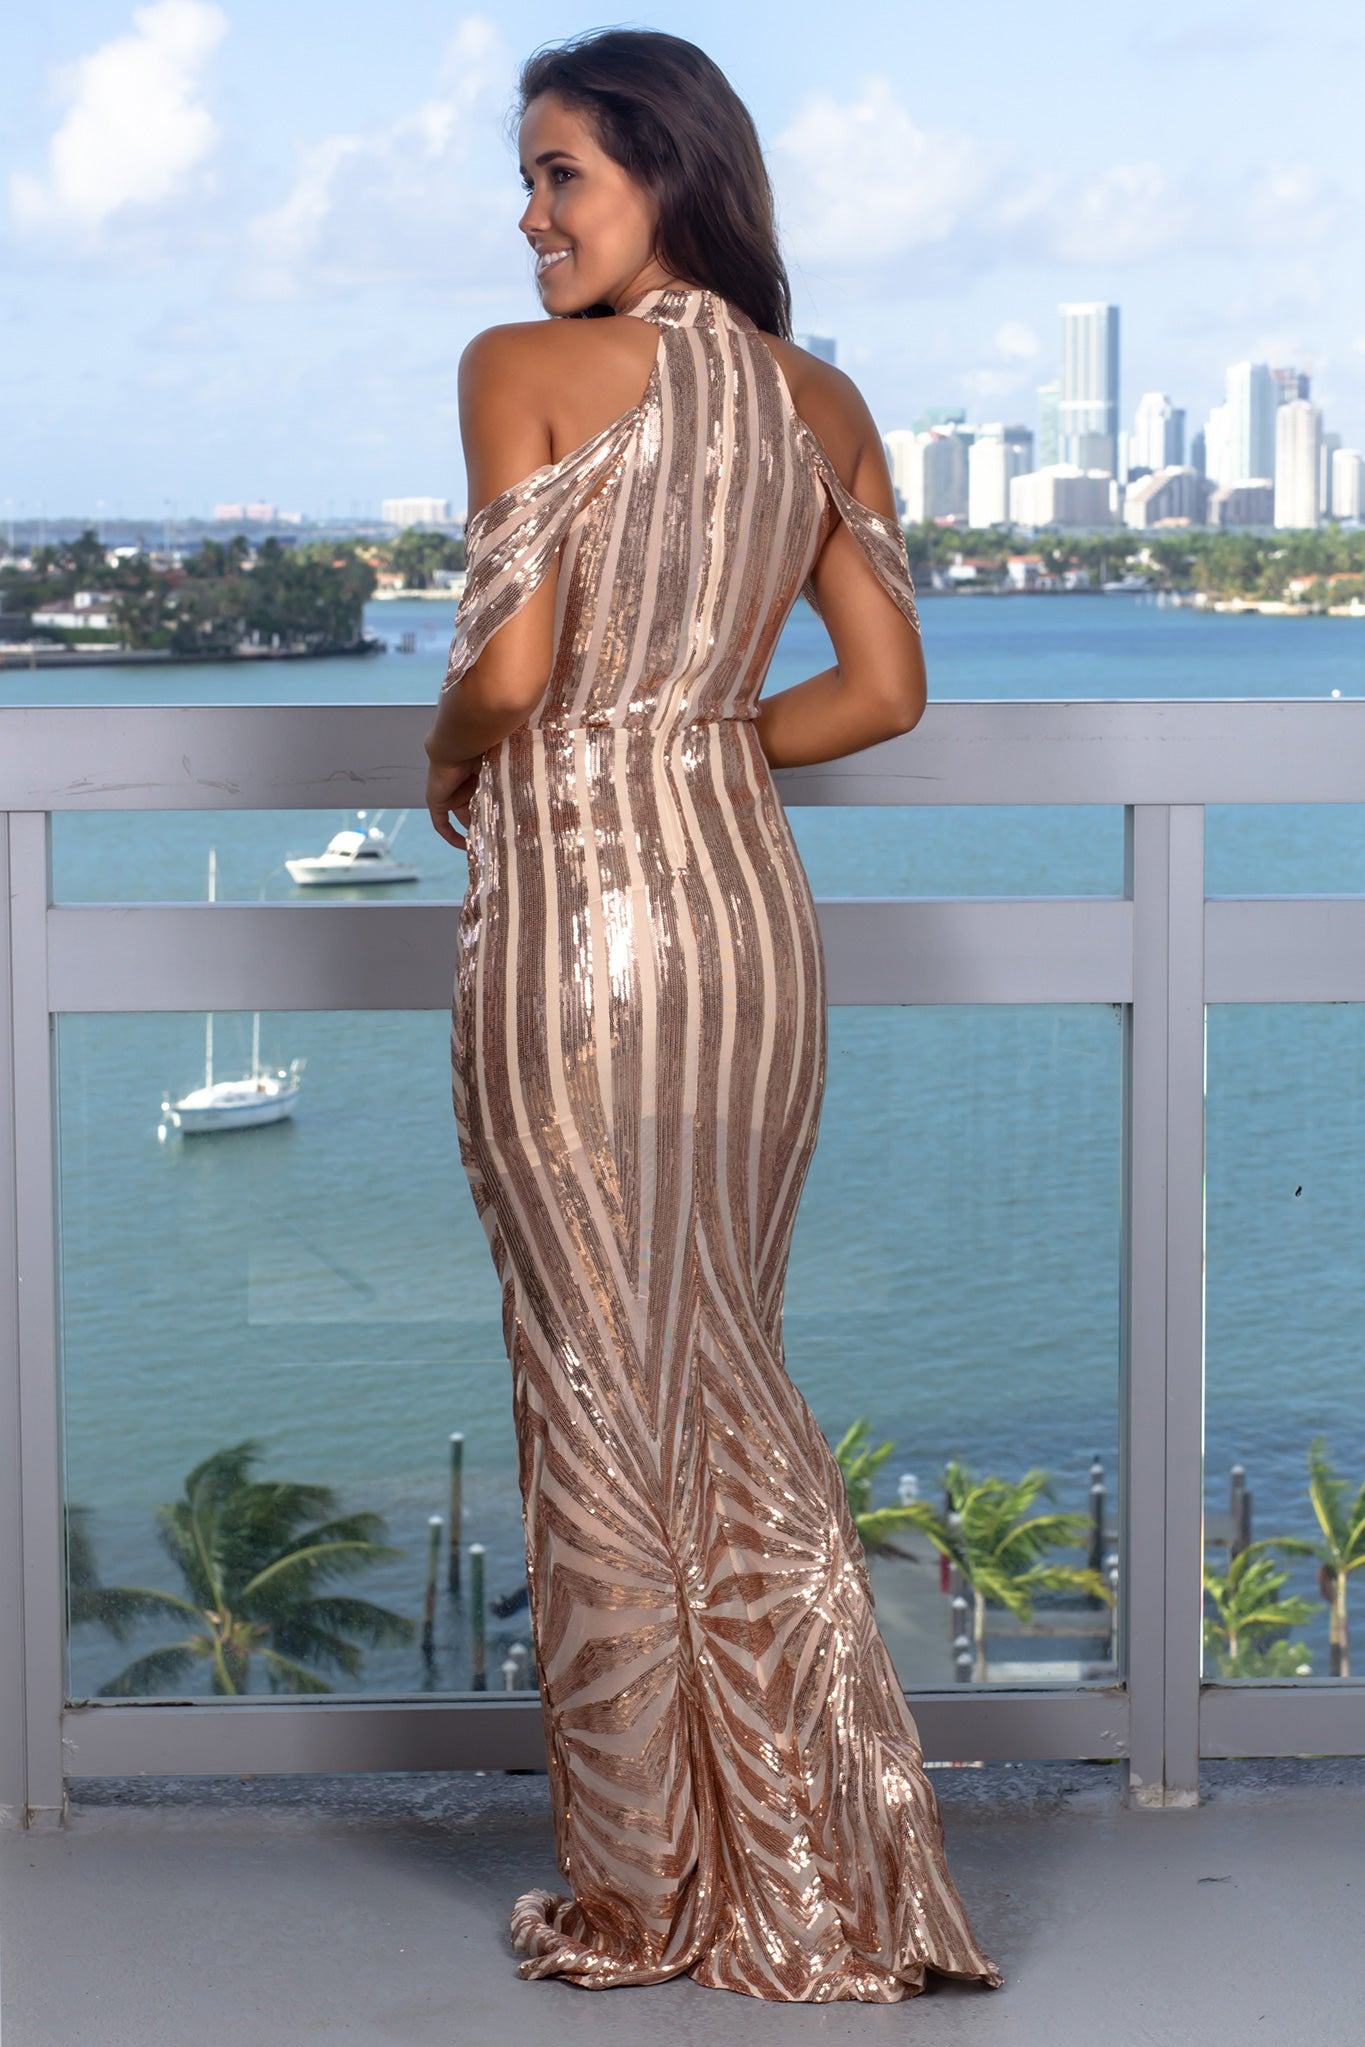 Rose Gold Halter Neck Maxi Dress with Arm Detail